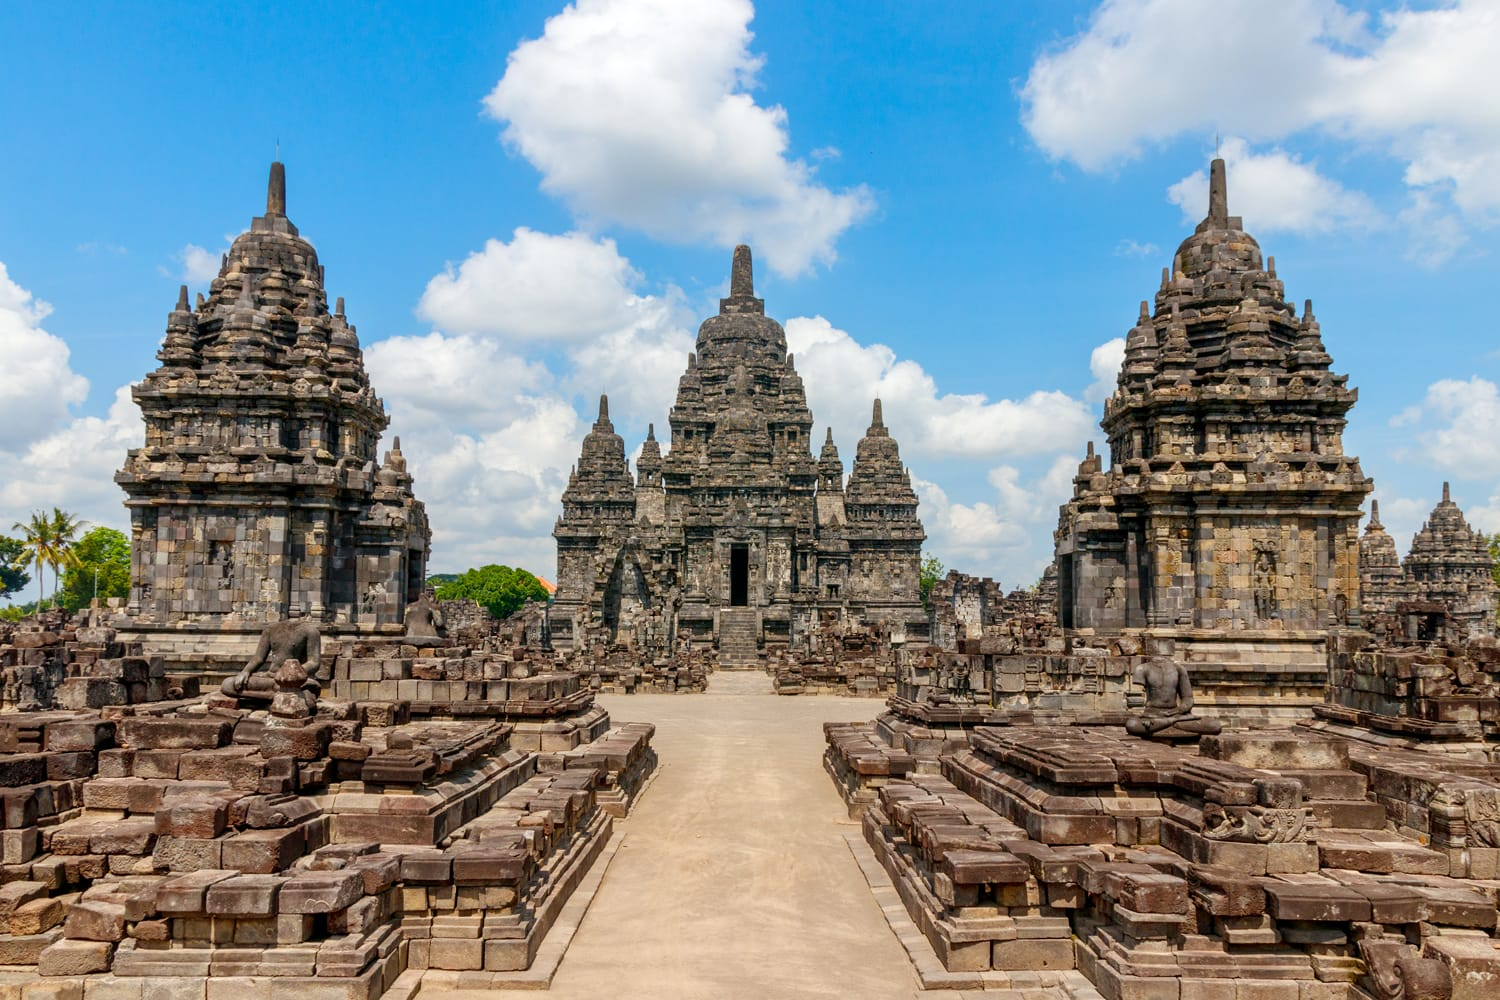 View of the Sewu temple complex under a blue sky with clouds. The Sewu temple is the second largest Buddhist temple of Indonesia and is located near the famous Prambanan temple.